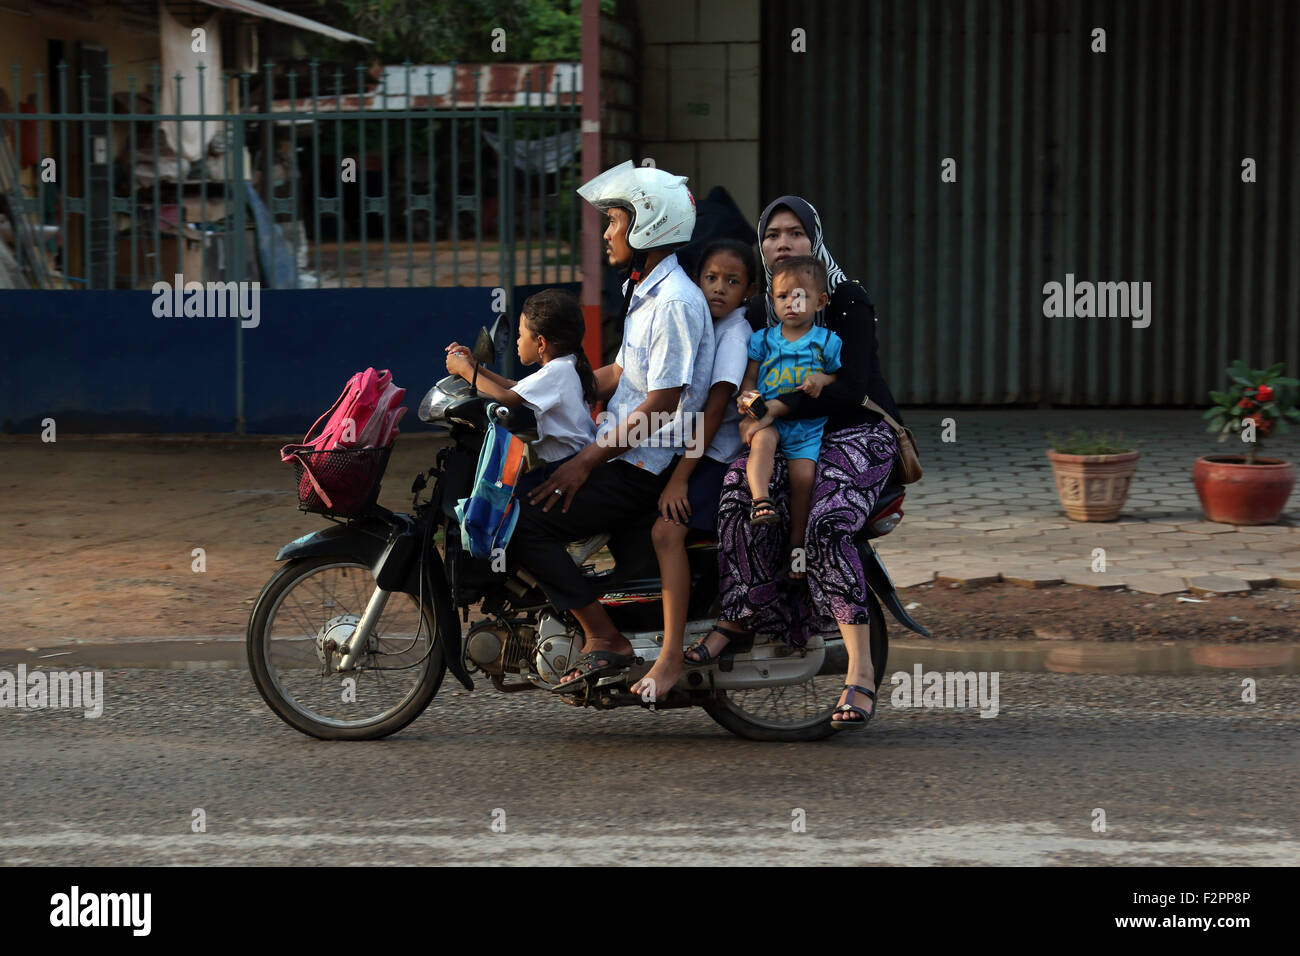 Family five people scooter kids school run - Stock Image